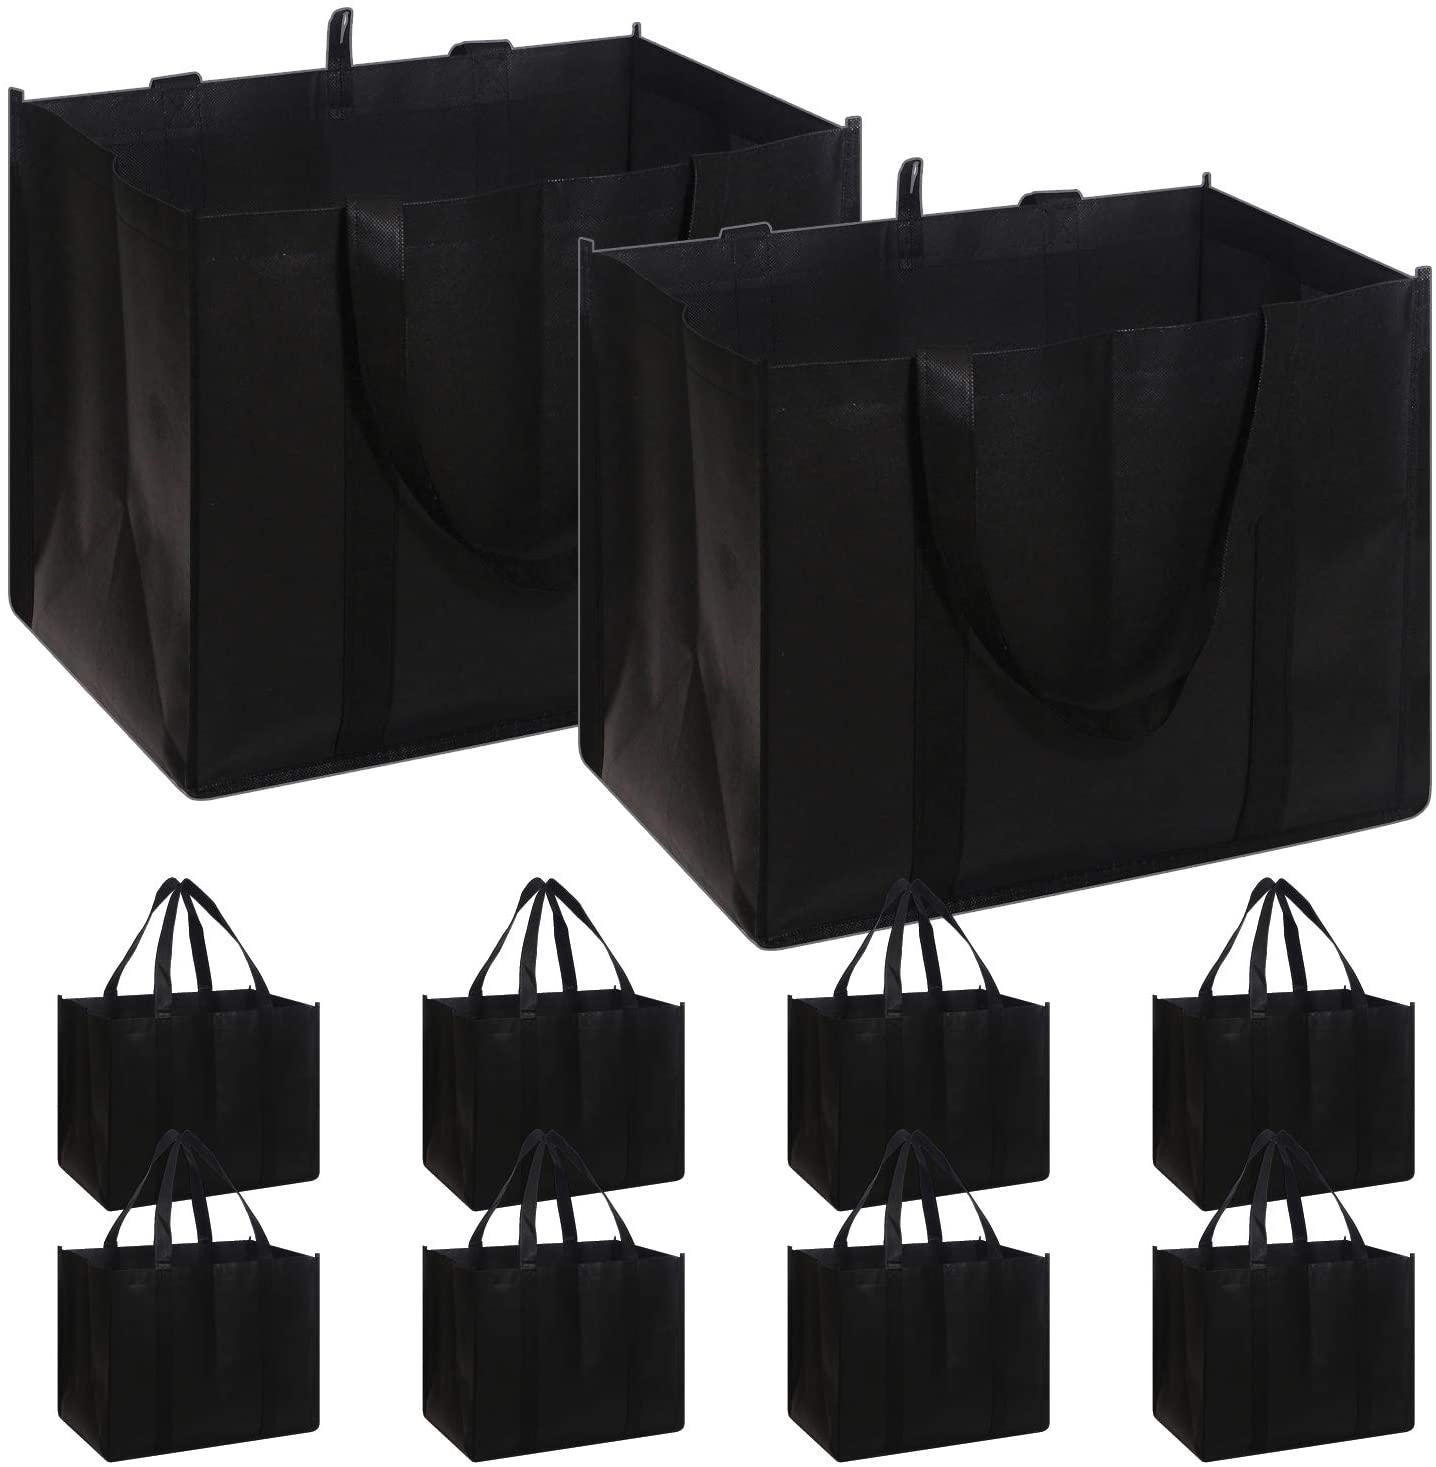 Set of 10 Reusable Grocery Bags Extra Large Super Strong Heavy Duty Shopping Tote Bags with Reinforced Handles, Black